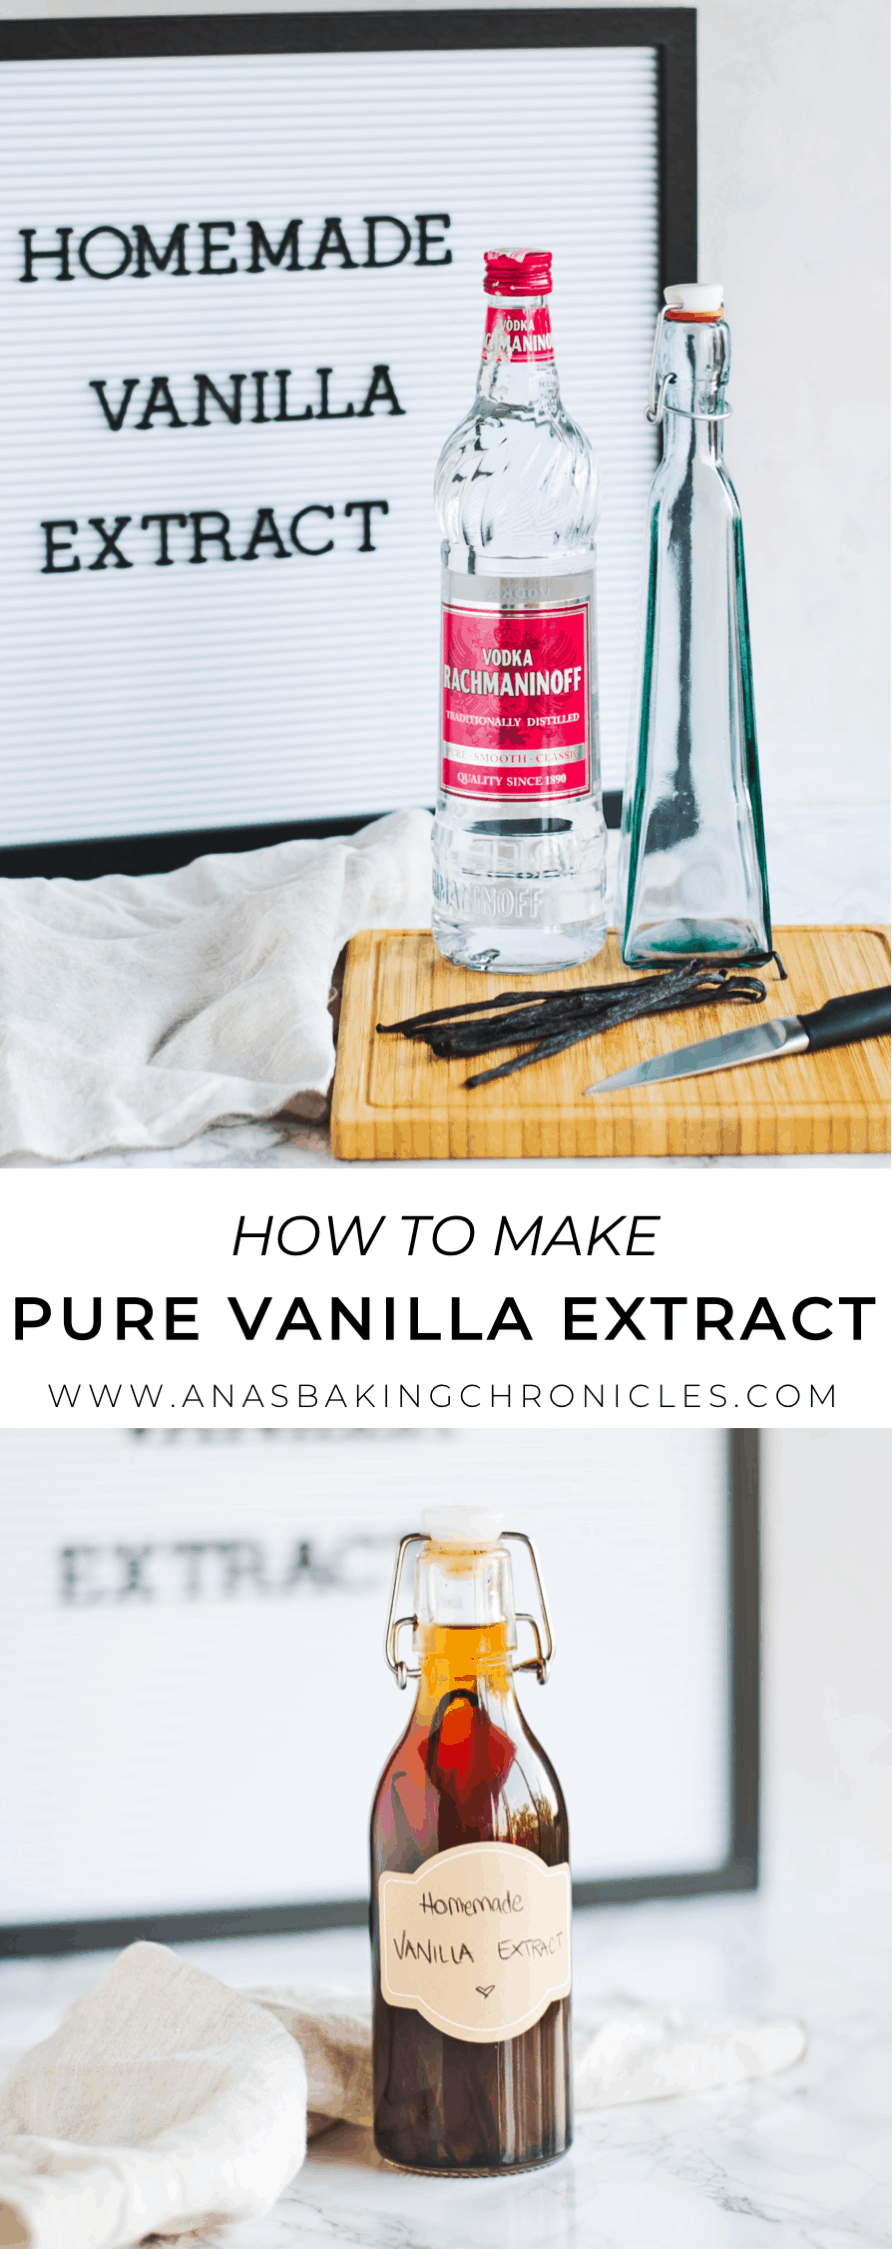 How to make pure vanilla extract